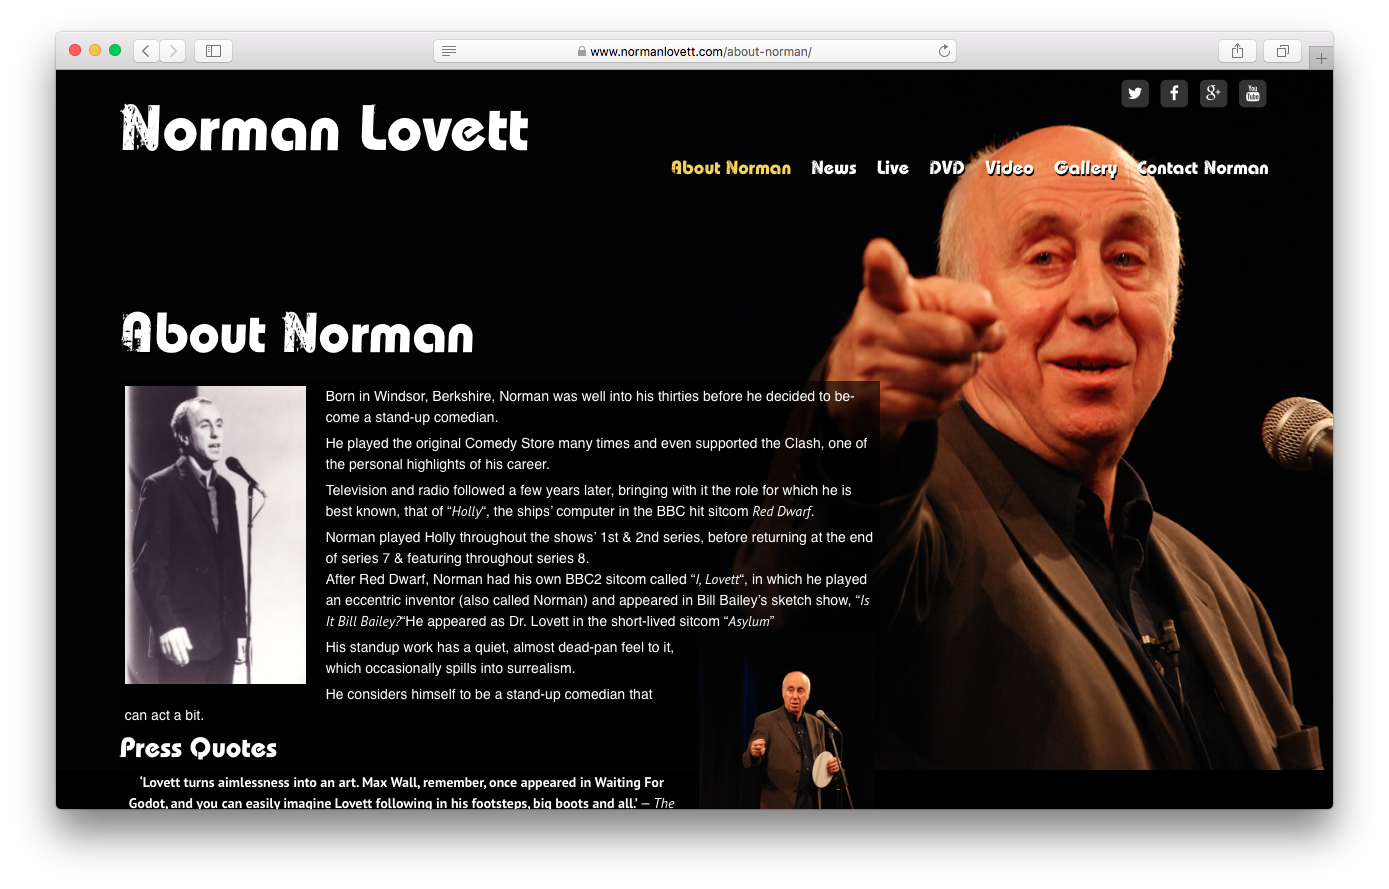 Norman Lovett - www.normanlovett.com